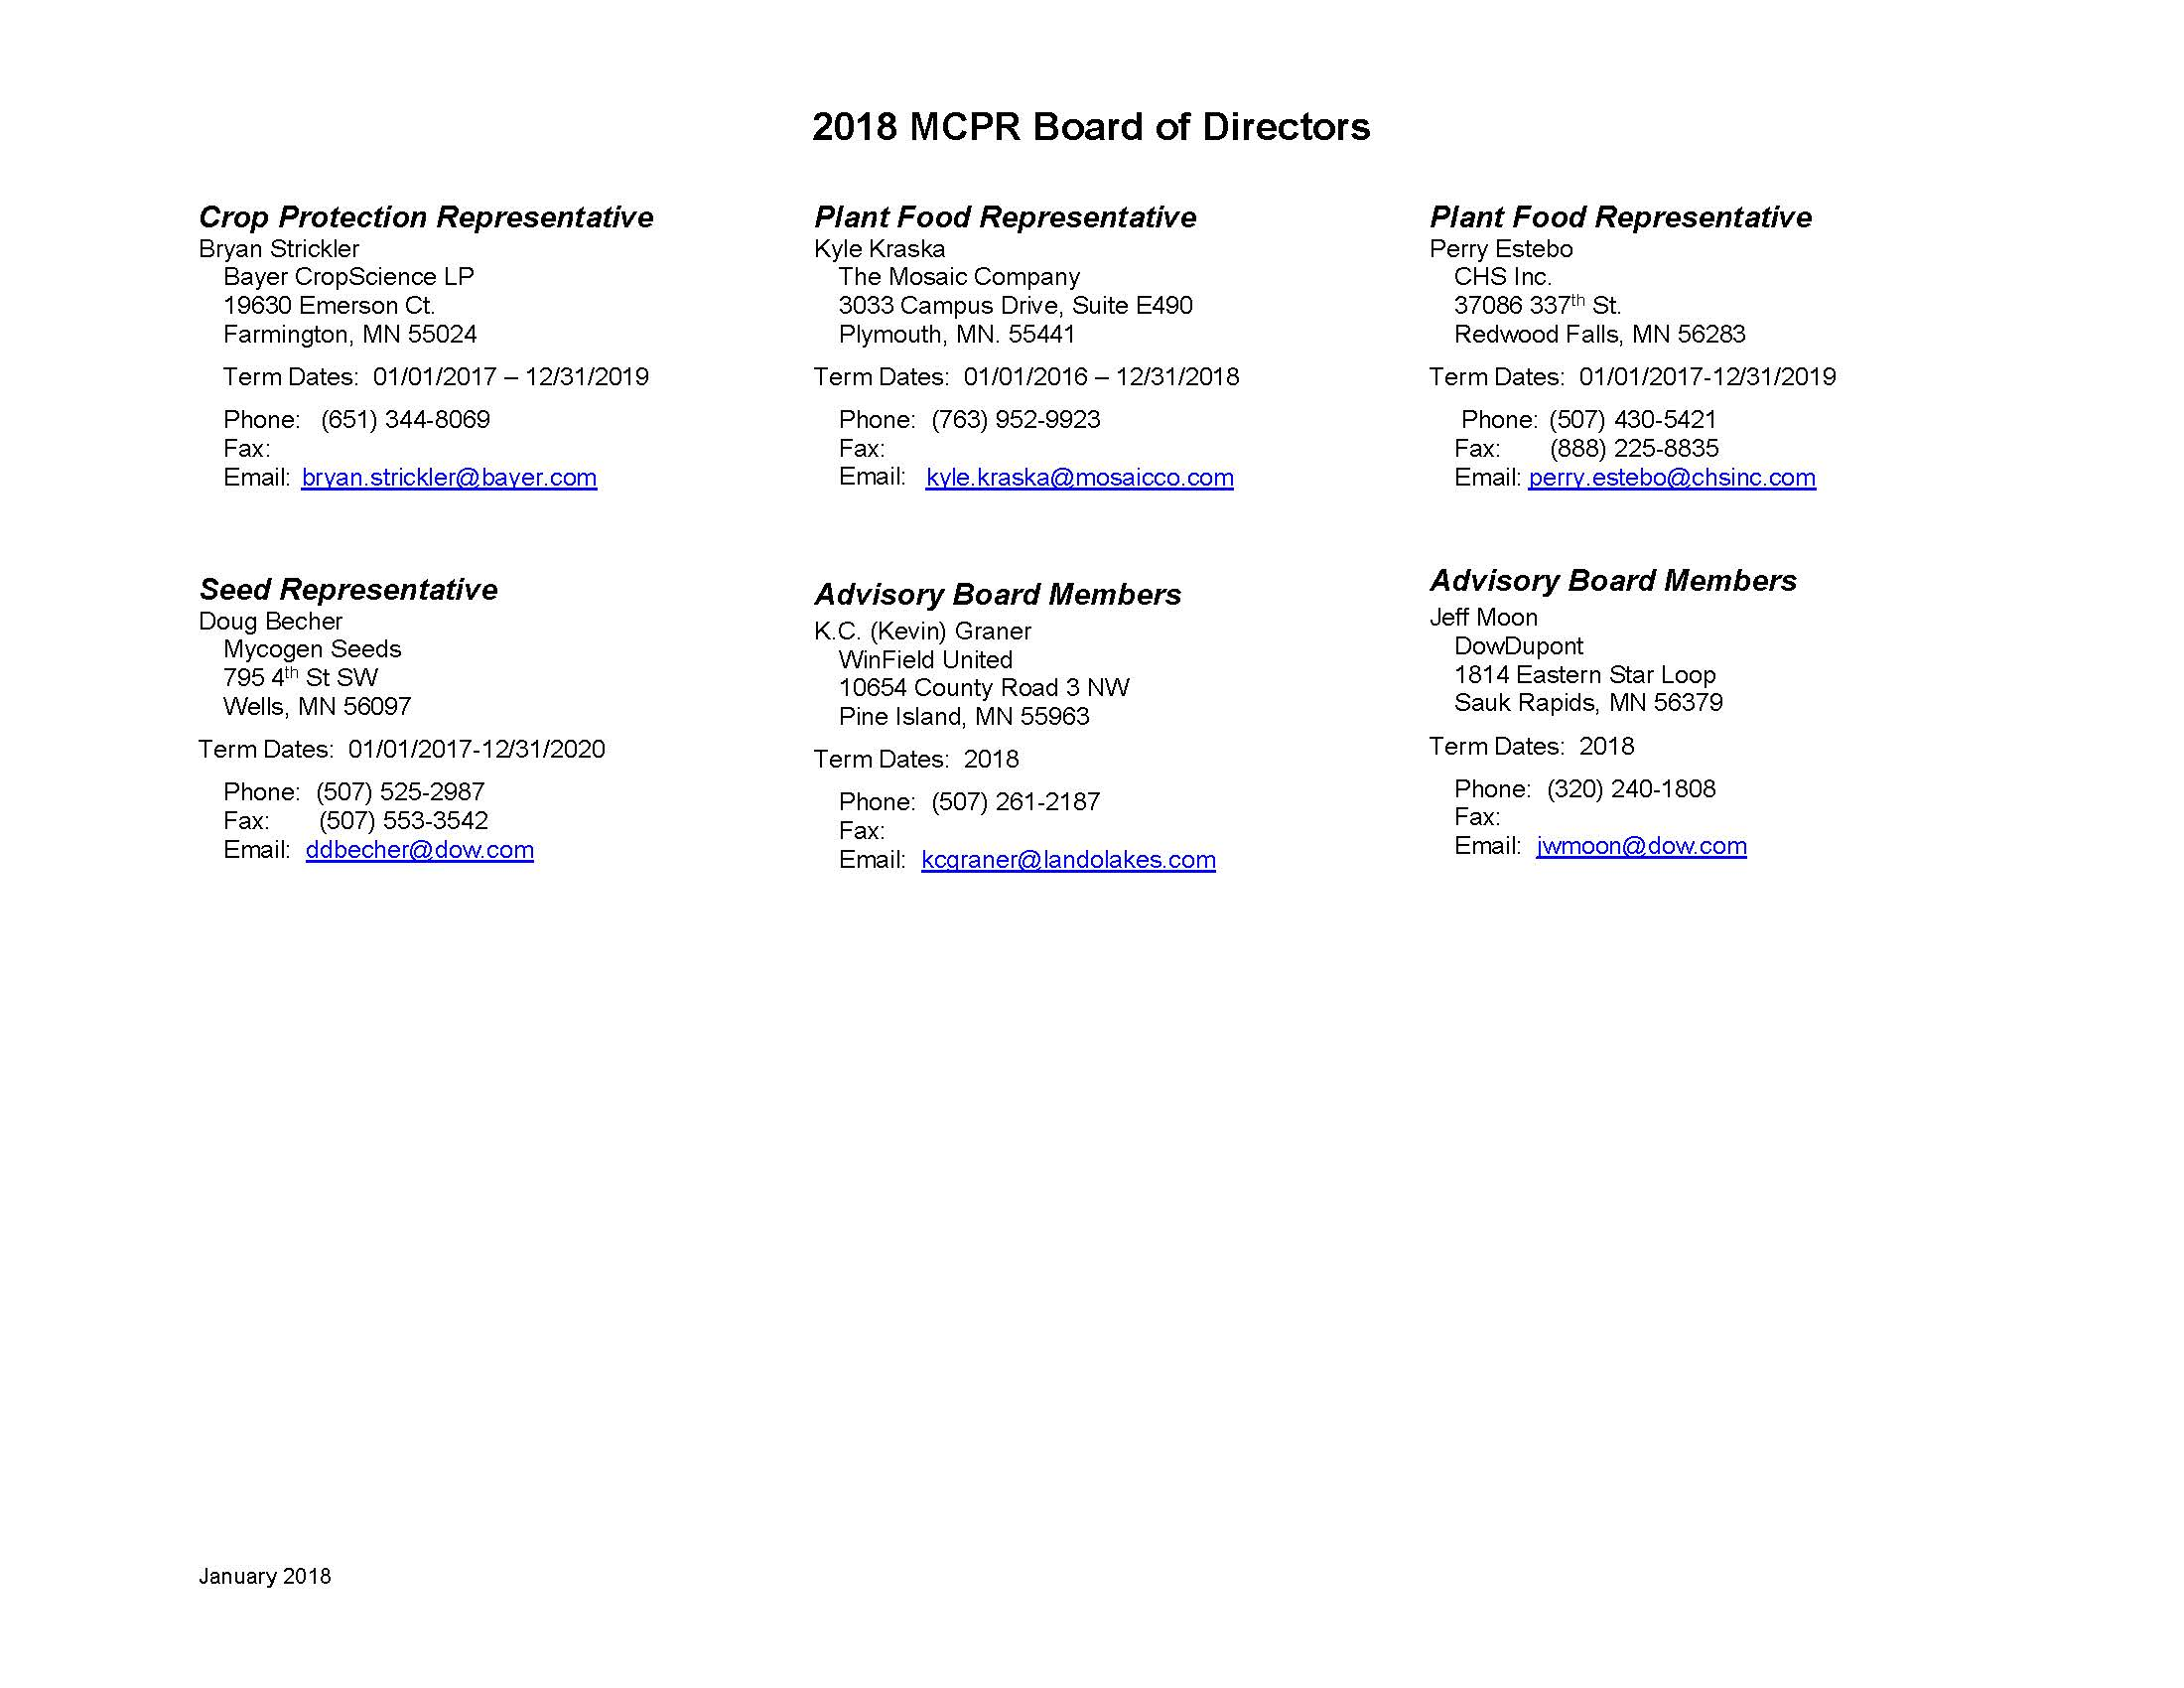 2018 MCPR Board of Directors_March2018_Page_2